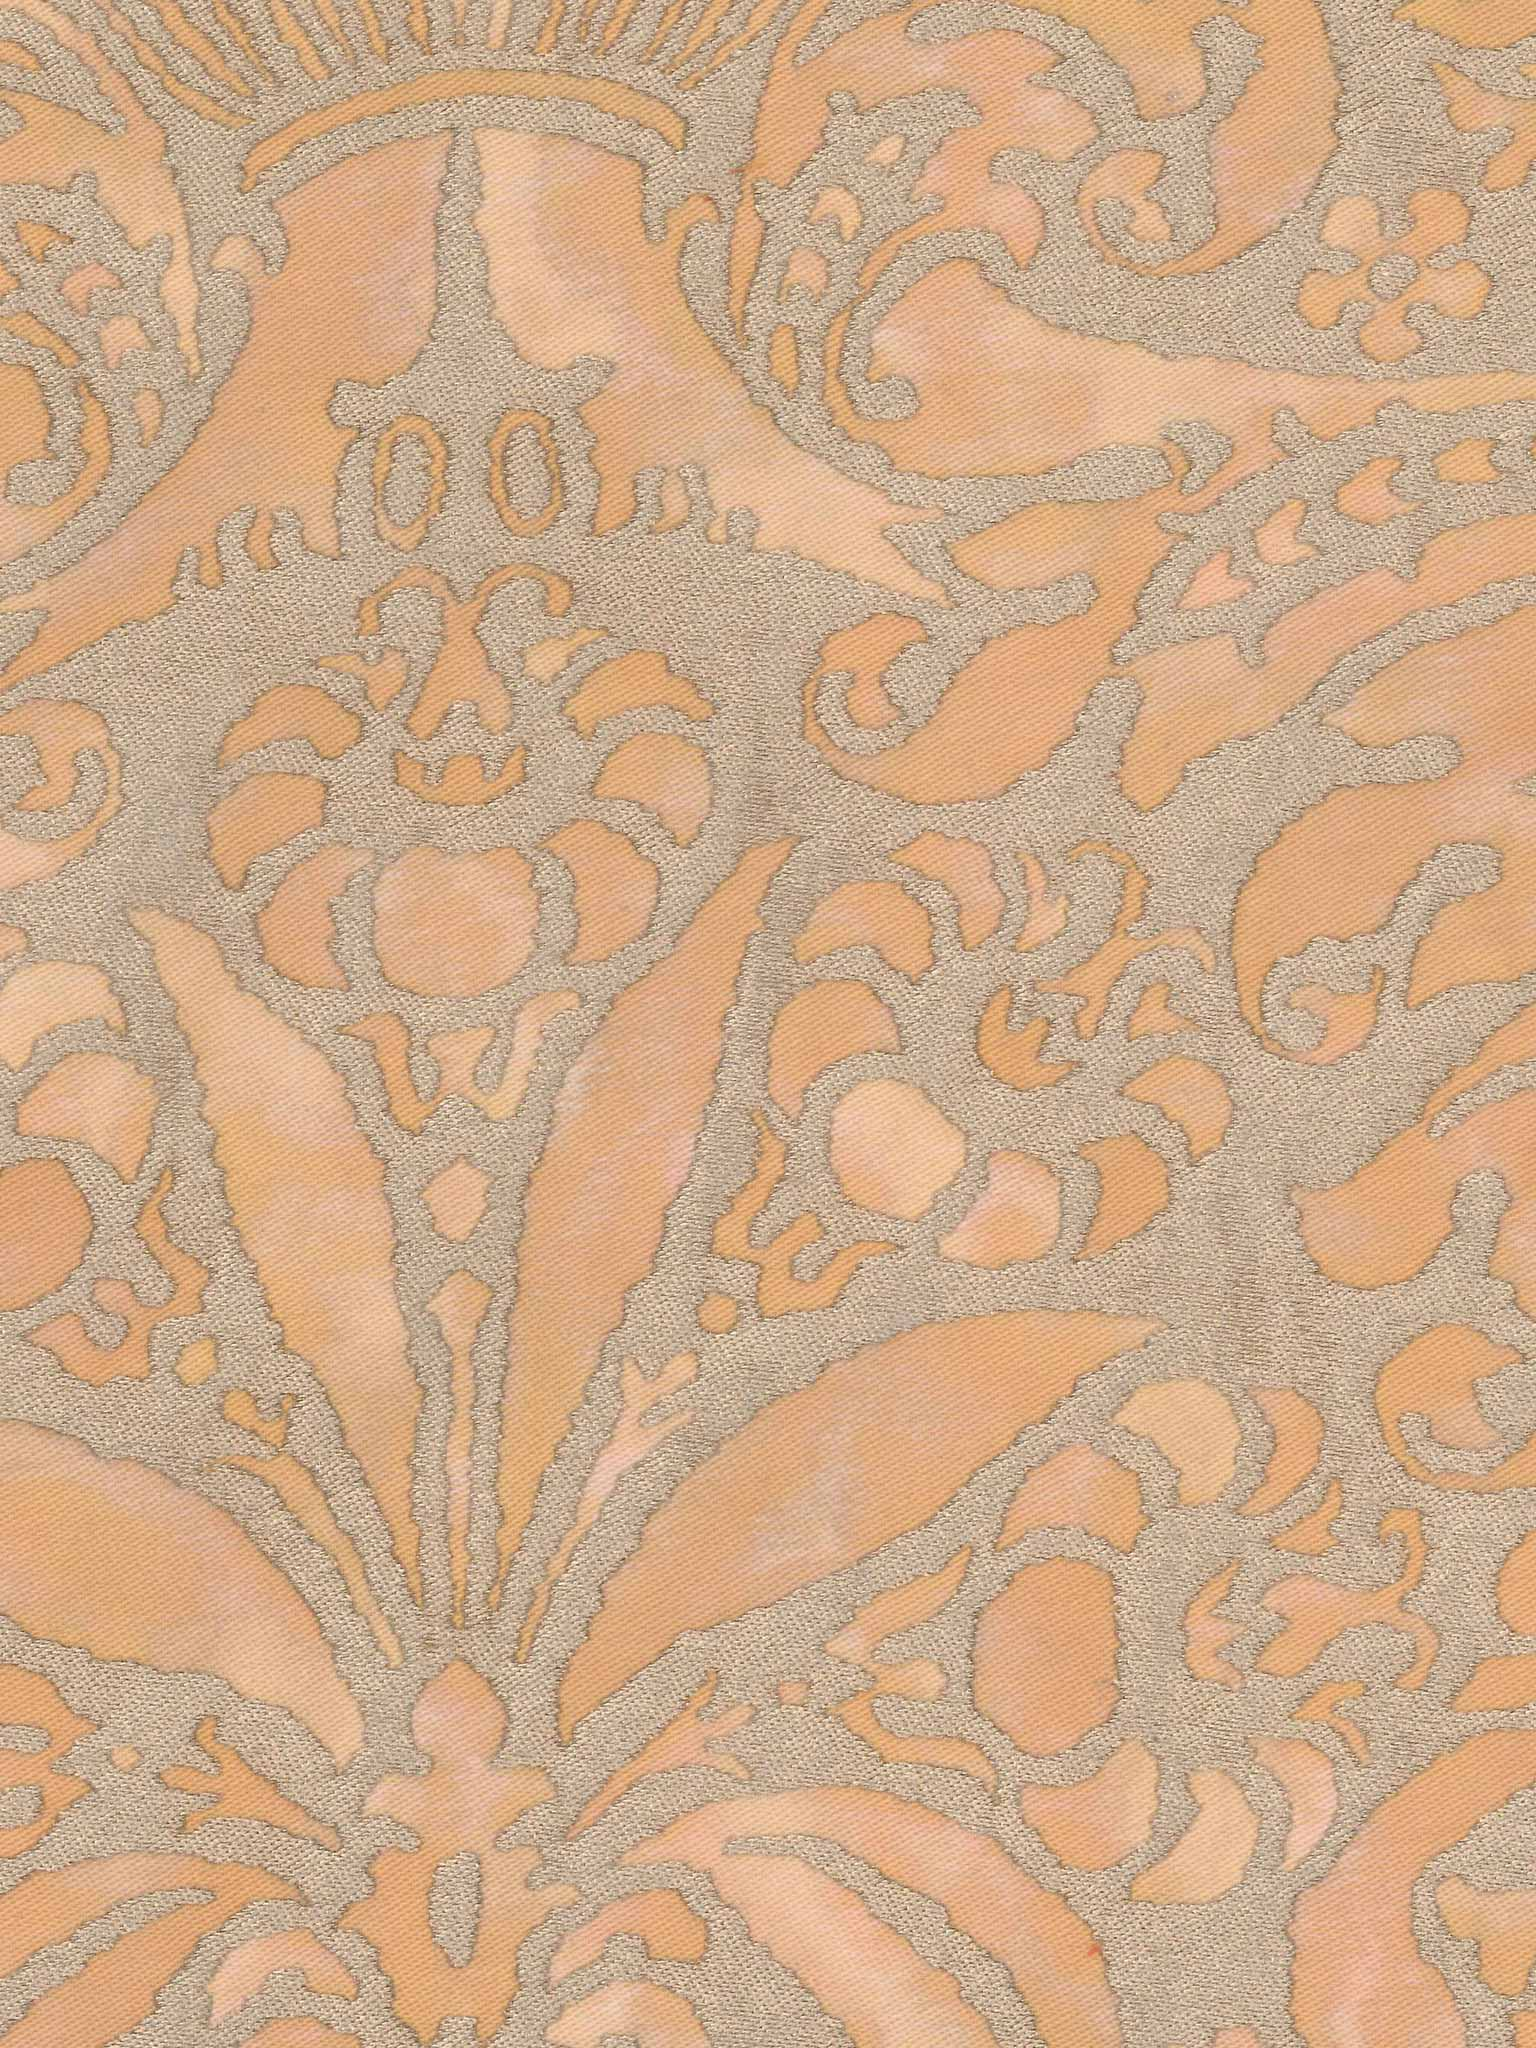 Campanelle in apricot monotones silvery gold fortuny 5374 campanelle in apricot monotones silvery gold fortuny printed cottons sisterspd